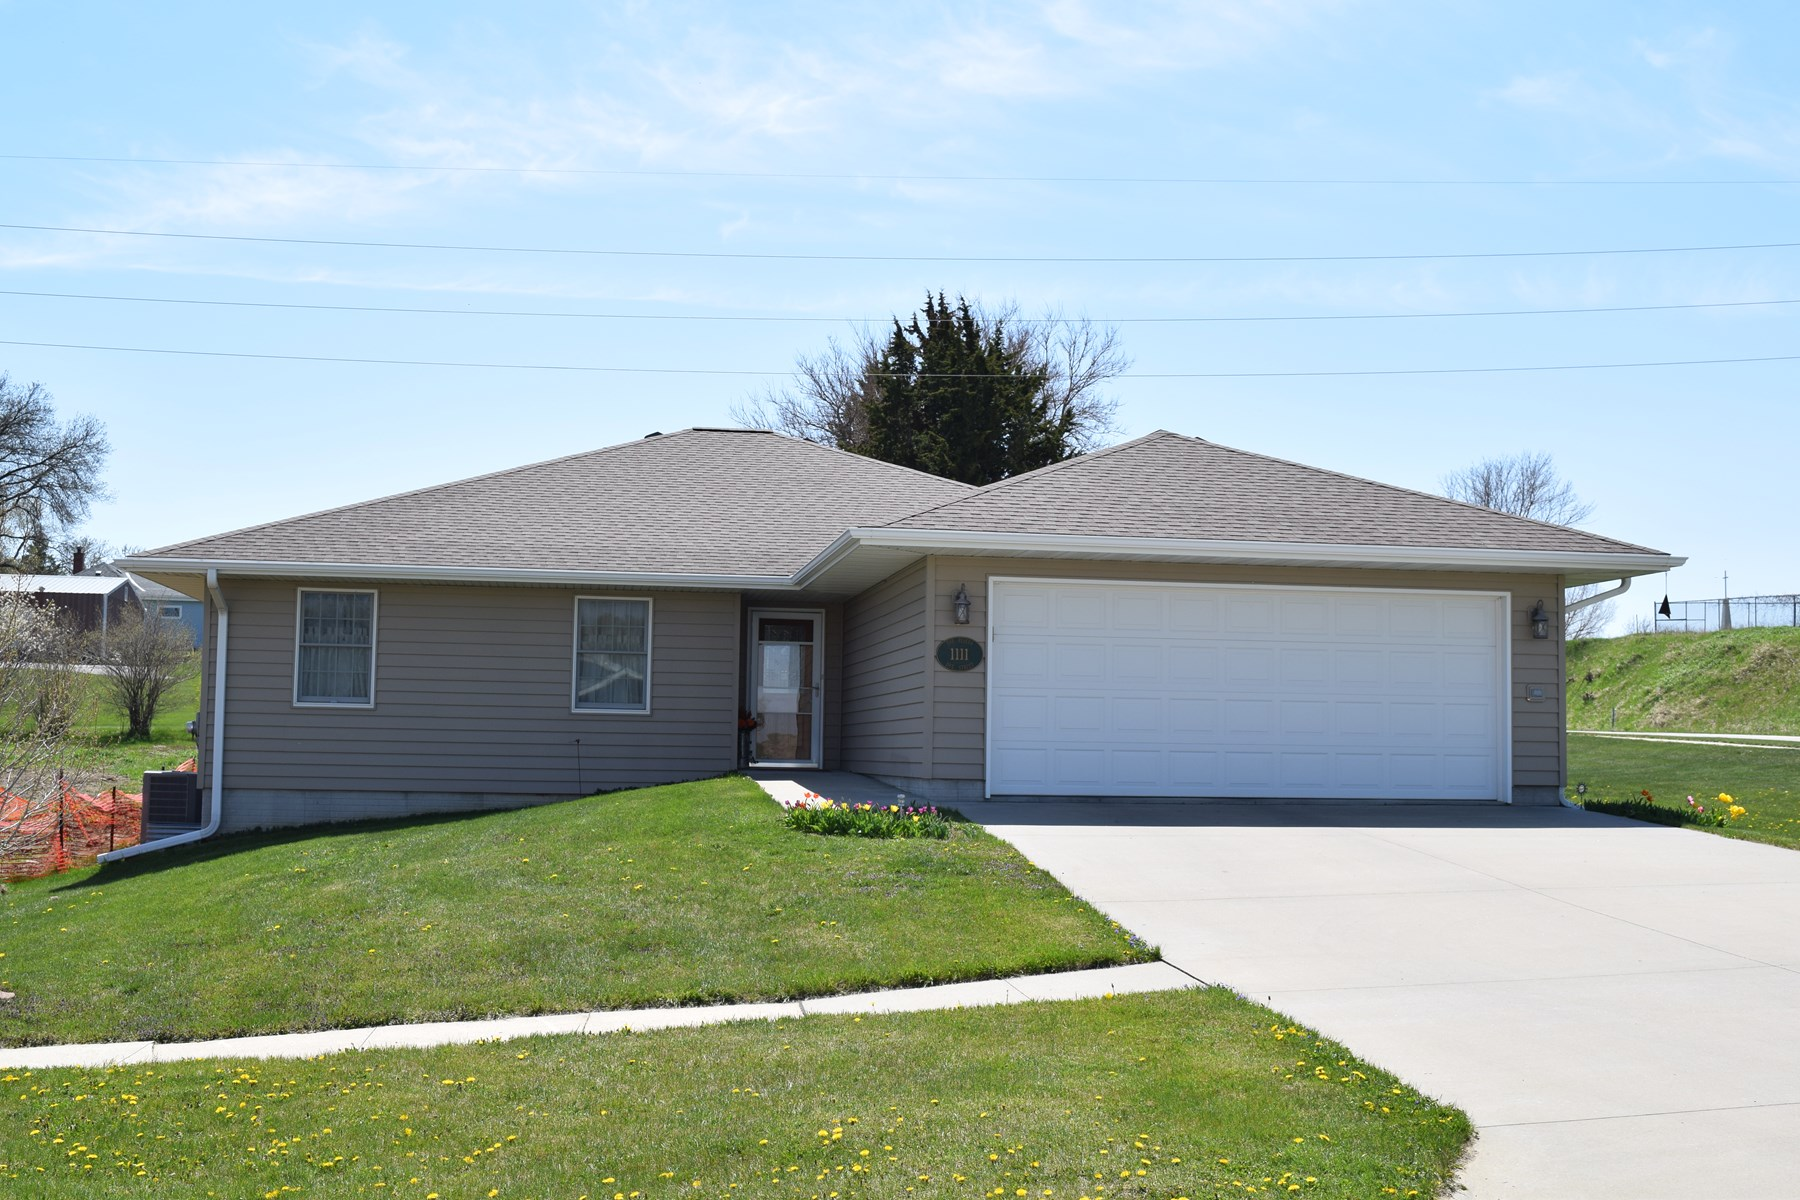 Ranch-Style, 3 Bedroom Home, Harlan, IA, Shelby County